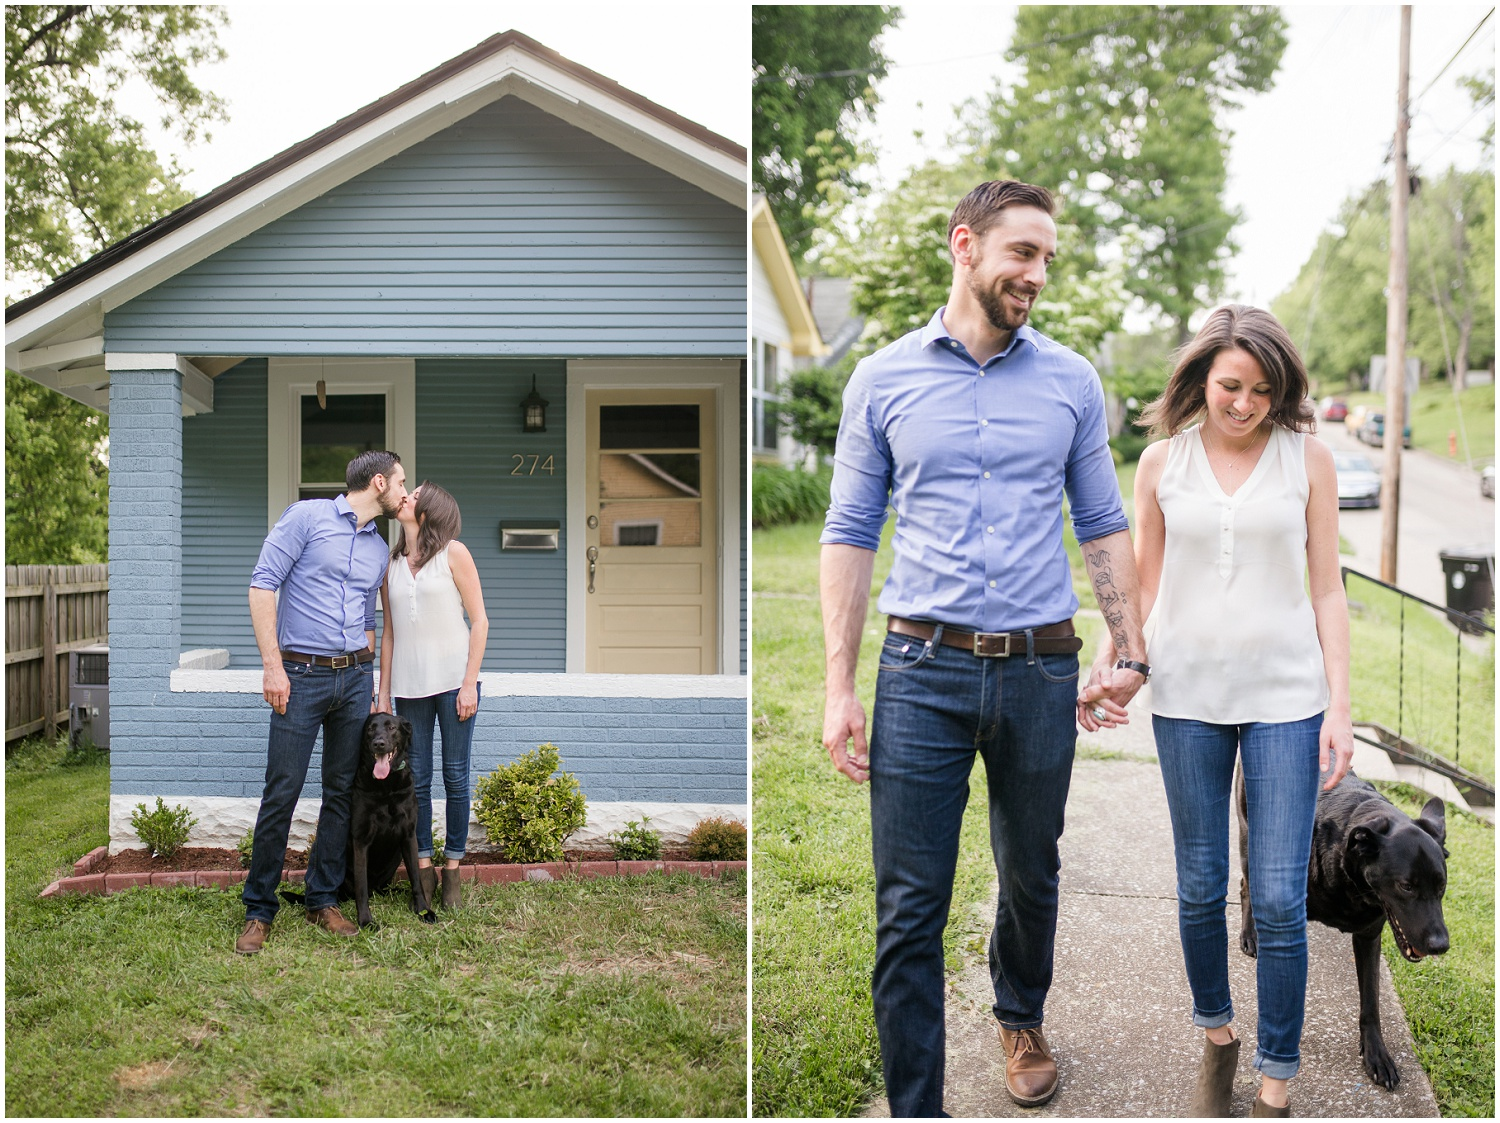 stephanie-andy-louisville-engagement-session_0002.jpg